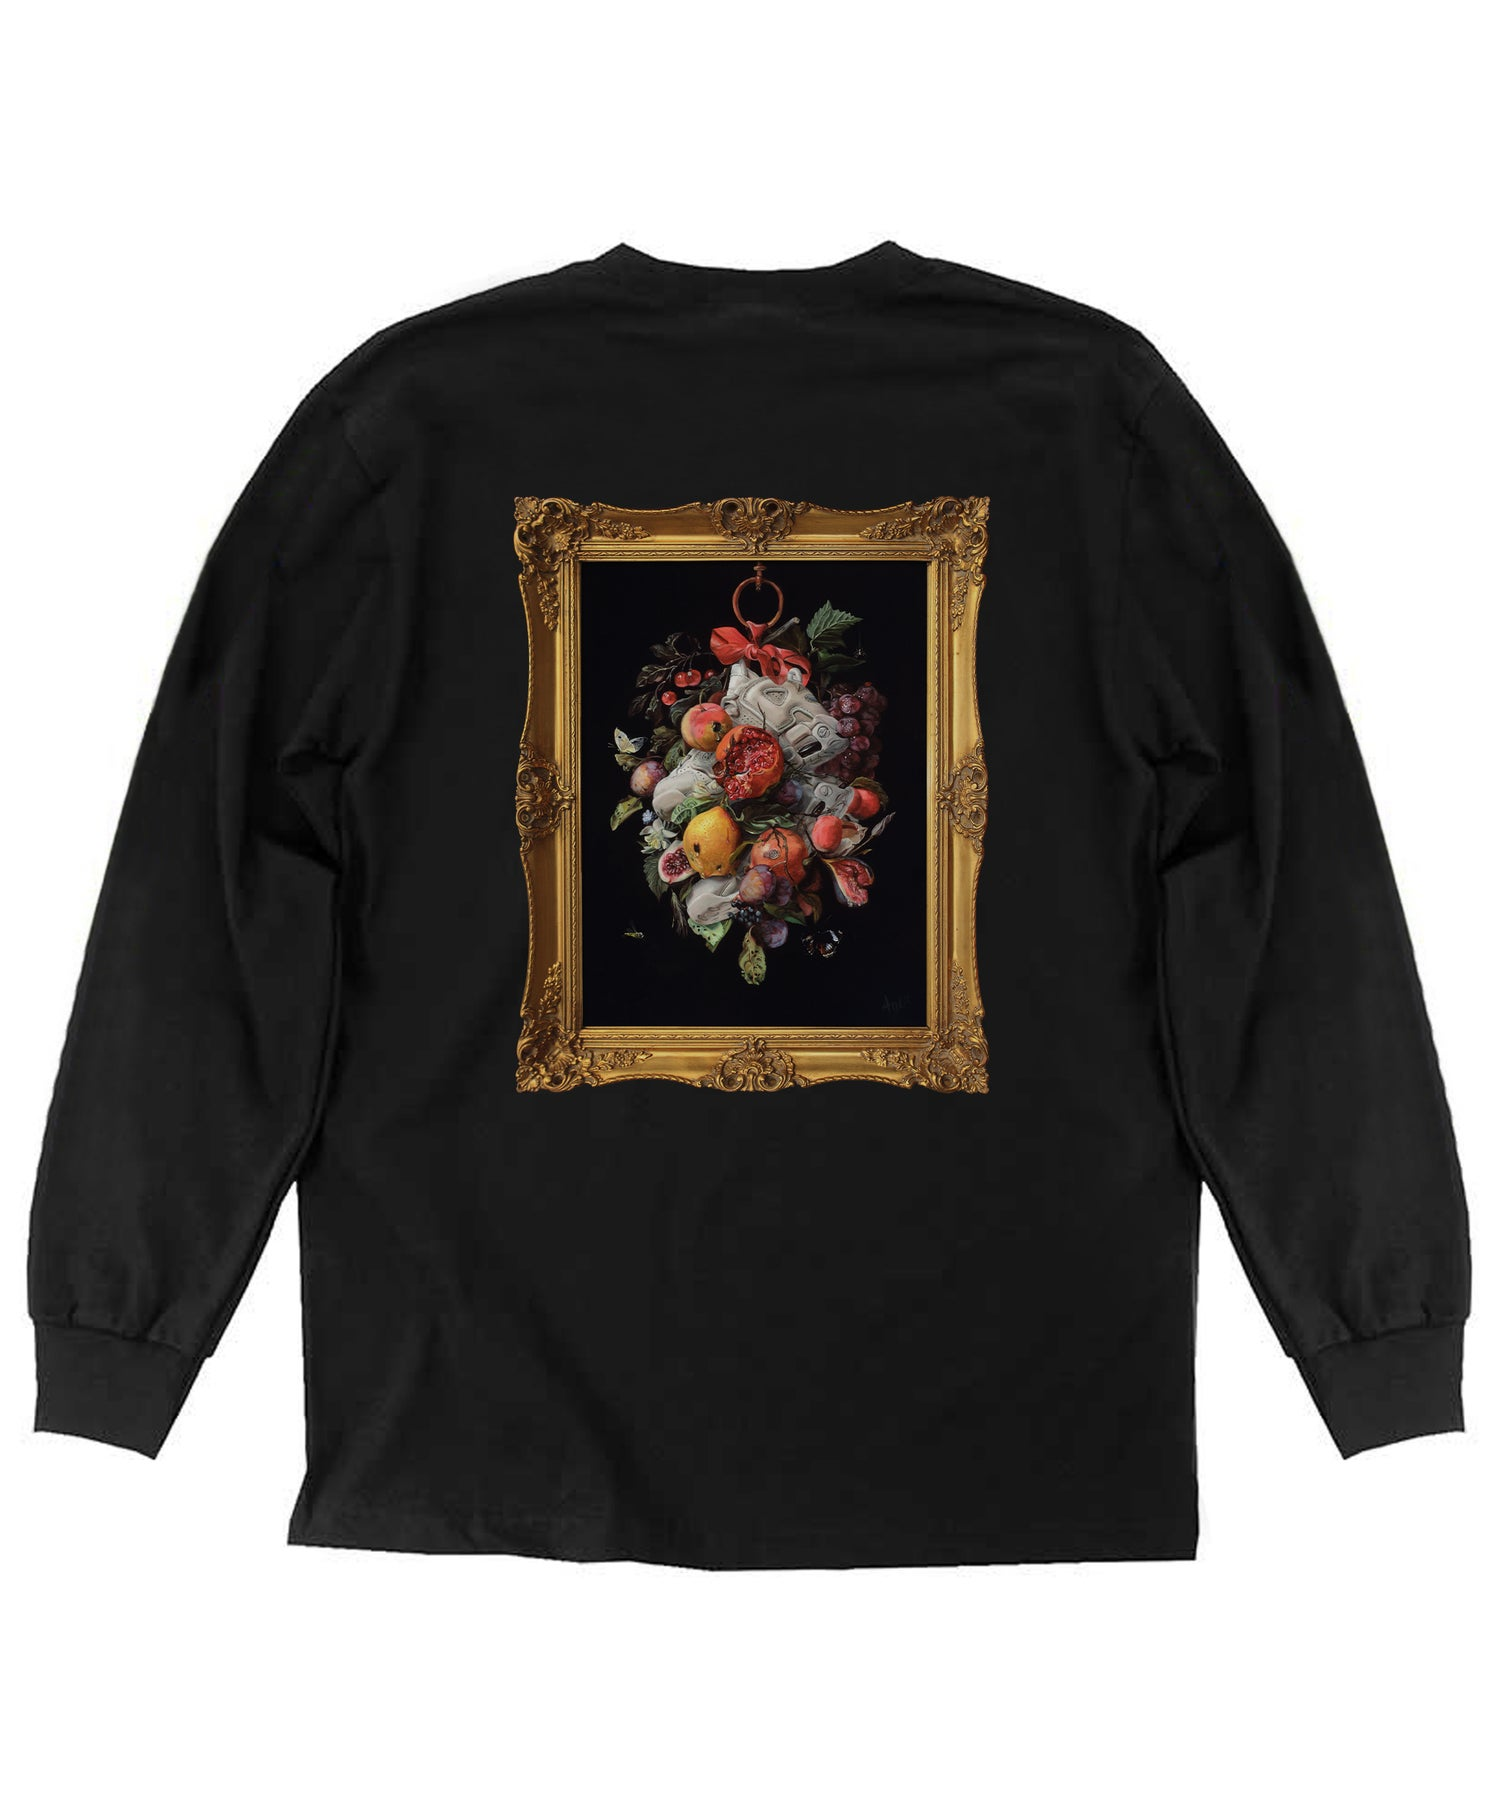 """Image of """"LOVE: YOU GAVE ME A RUN FOR MY MONEY"""" Framed Long Sleeve T-Shirt"""